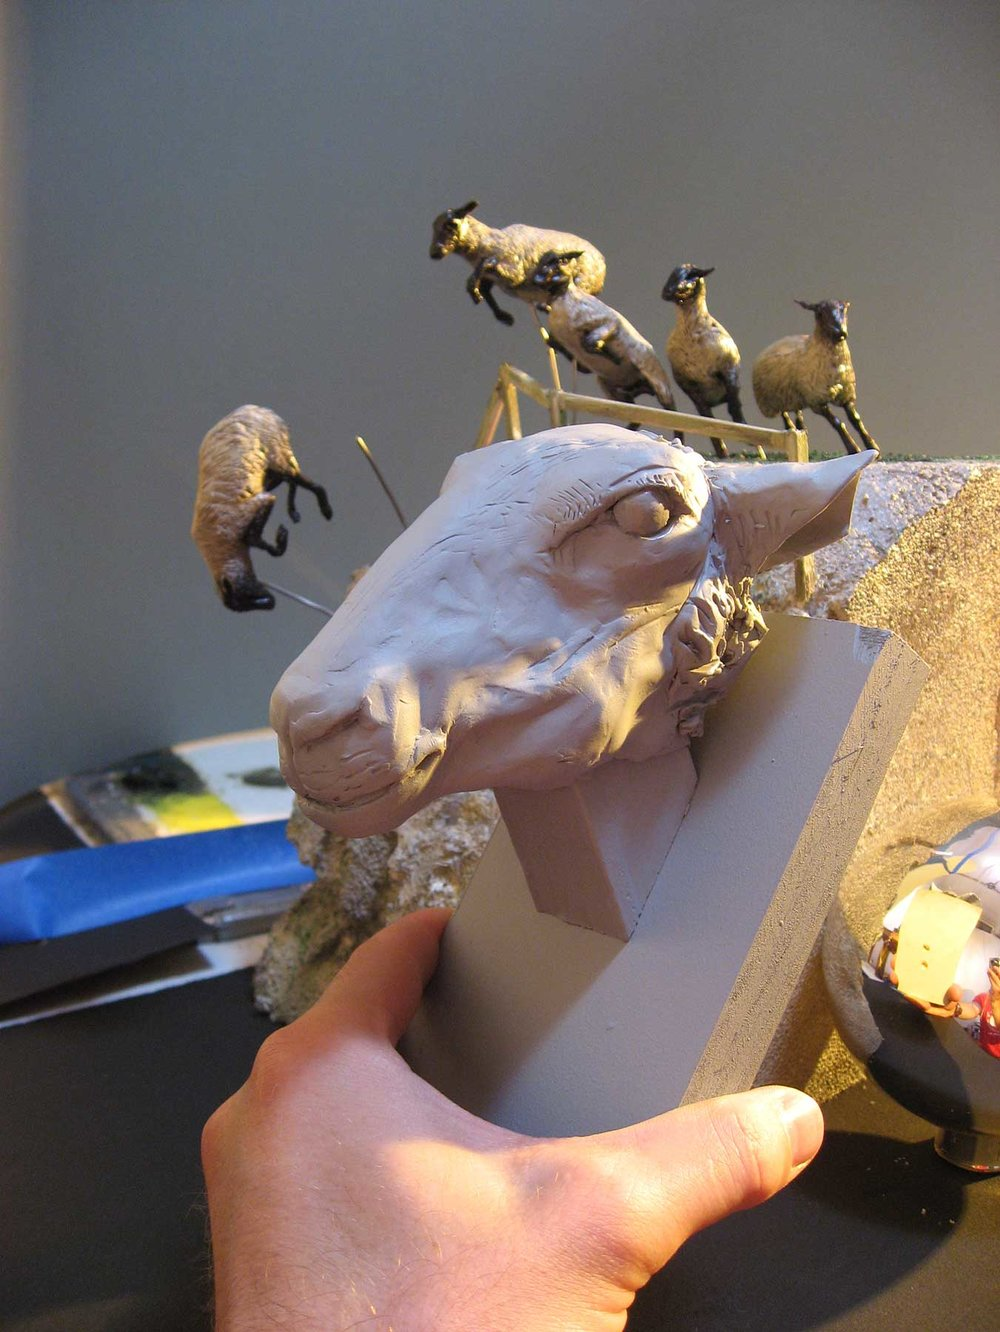 I photographed the head at different angles, to match the pose of the smaller figures. This gave me the desired, extra lighting details for each sheep.